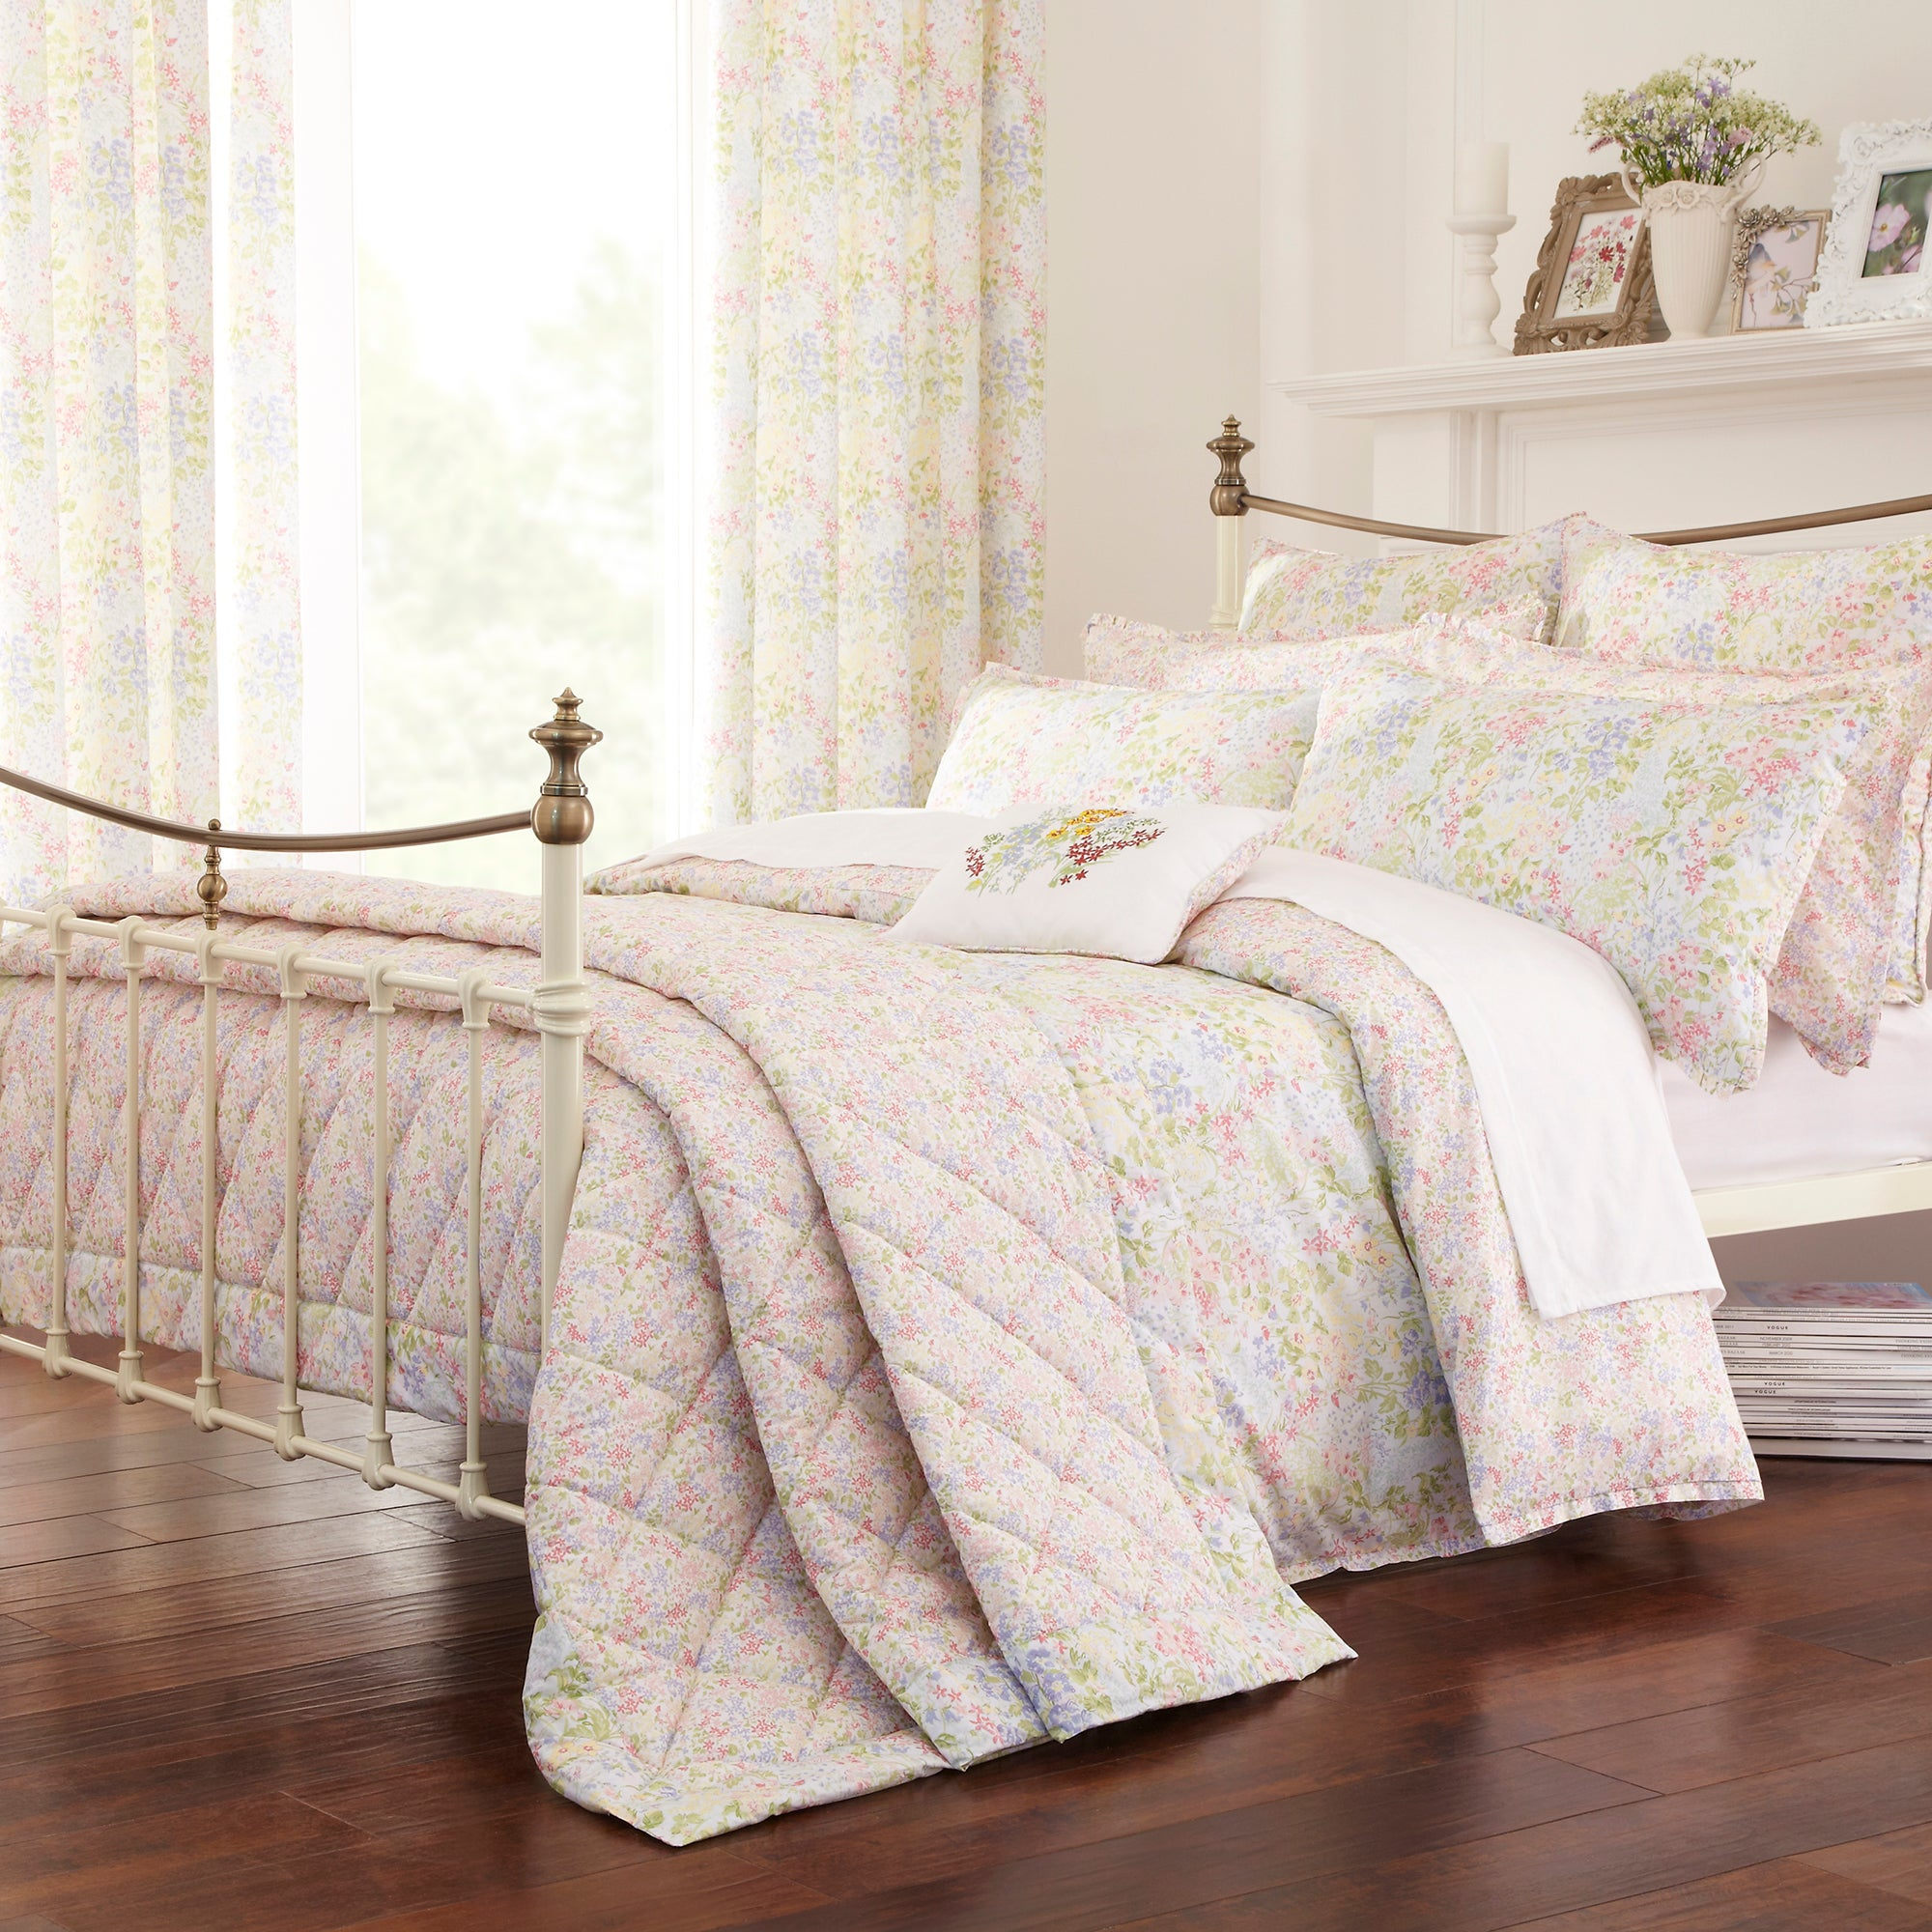 Dorma Country Garden Ashley Collection Duvet Cover Set